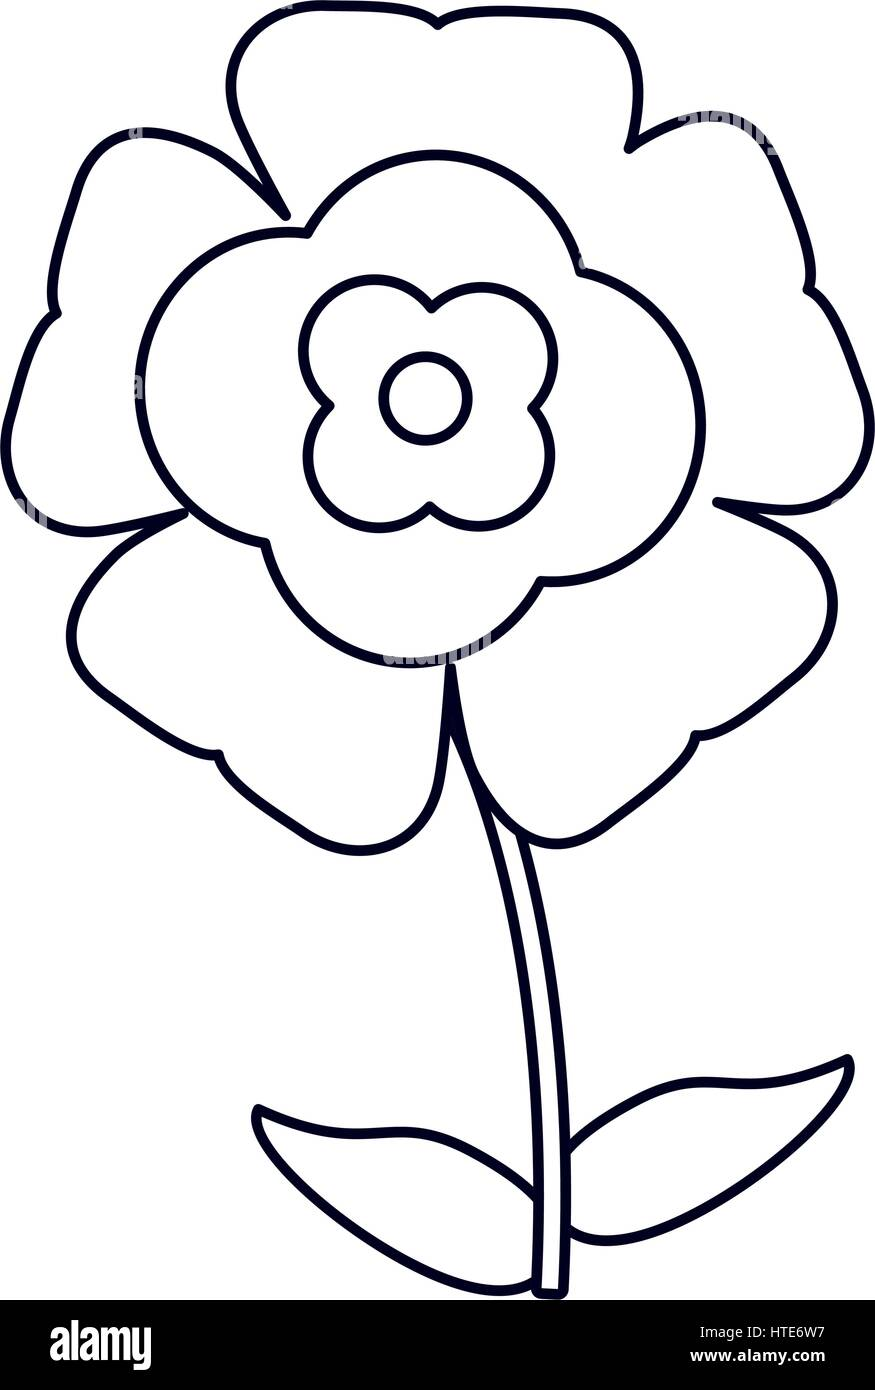 flower flourish natural outline - Stock Image